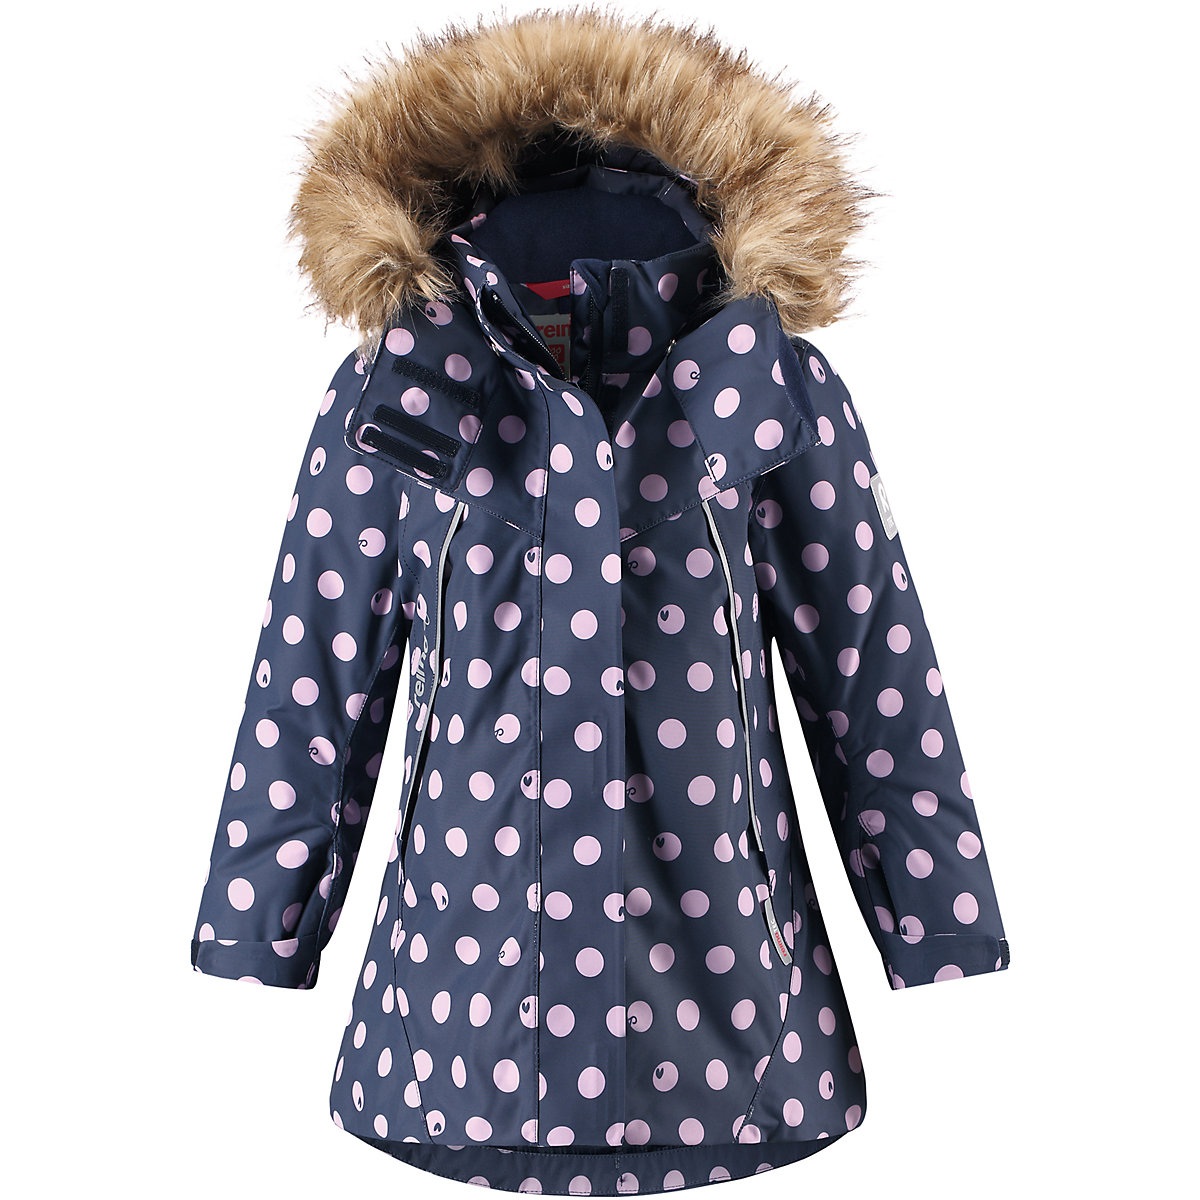 REIMA Jackets & Coats 8665390 for girls baby clothing winter warm boy girl jacket Polyester motorcycle jacket men winter motorcycle riding jacket windproof reflective motorbike clothing moto jaqueta motorcycle racing